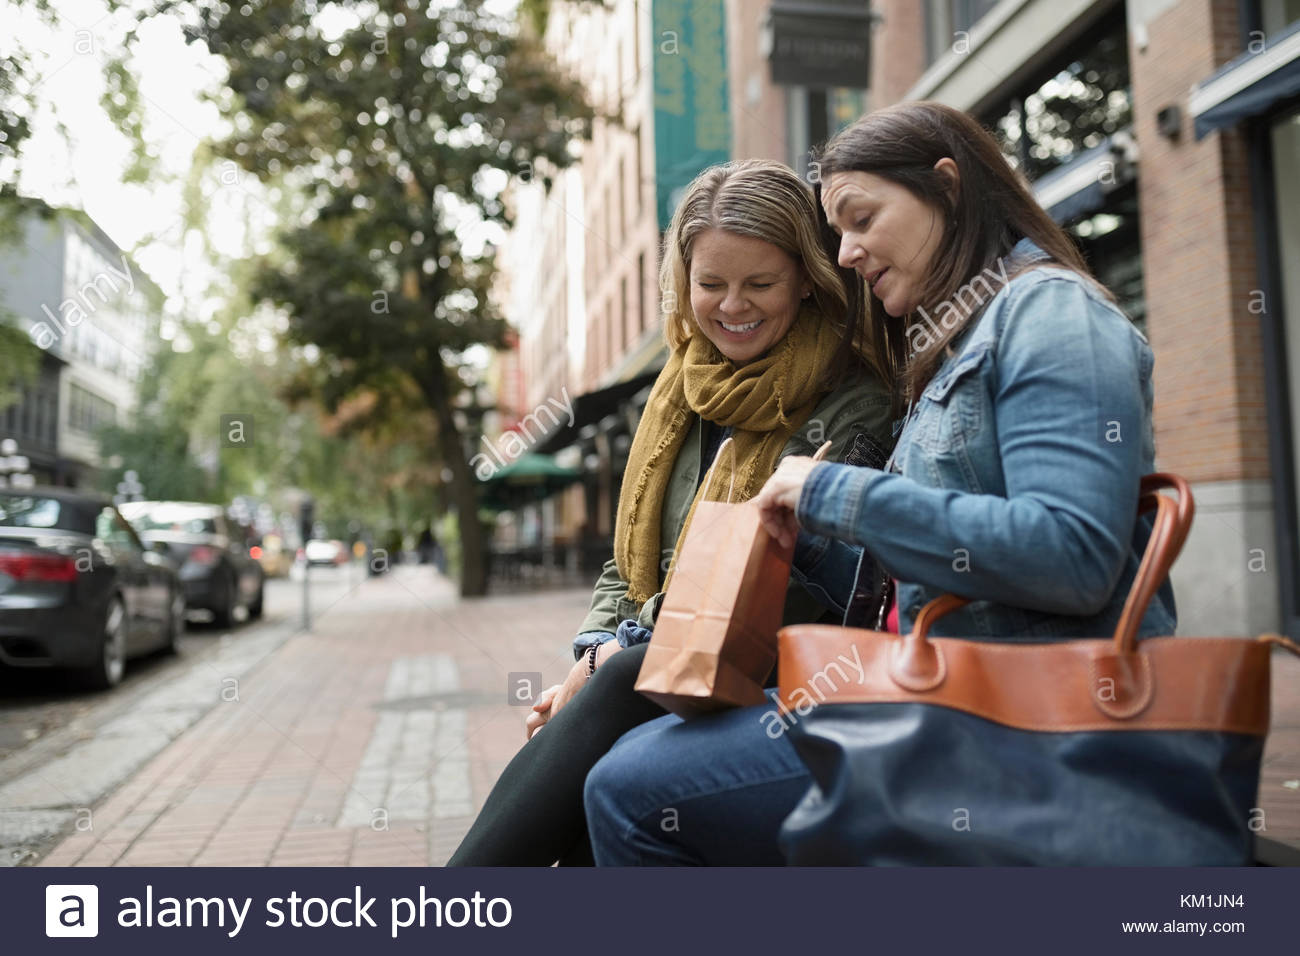 Mature women friends looking into shopping bag on urban sidewalk bench - Stock Image